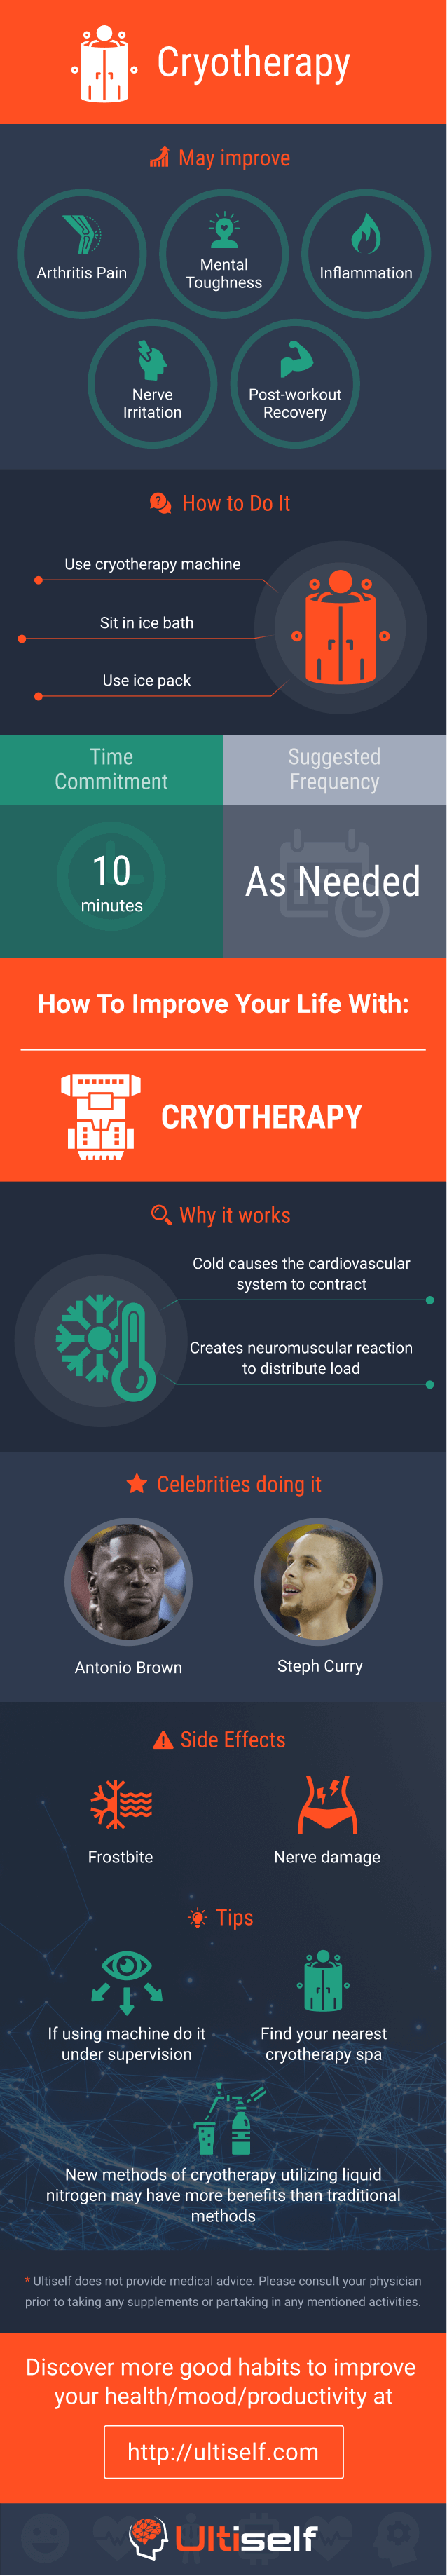 Cryotherapy infographic